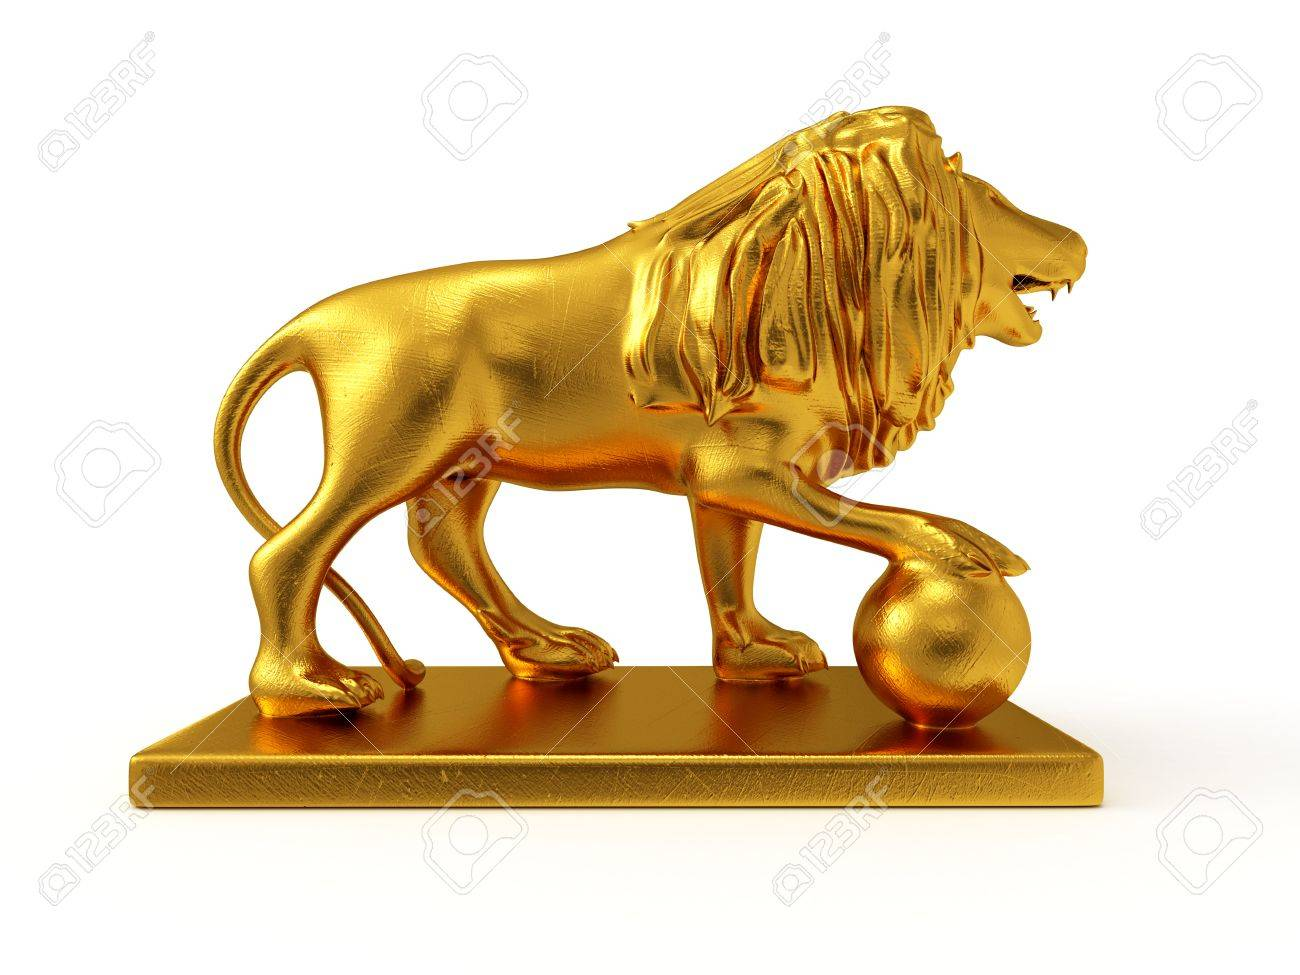 golden statue of a lion 3d rendered isolated on white background